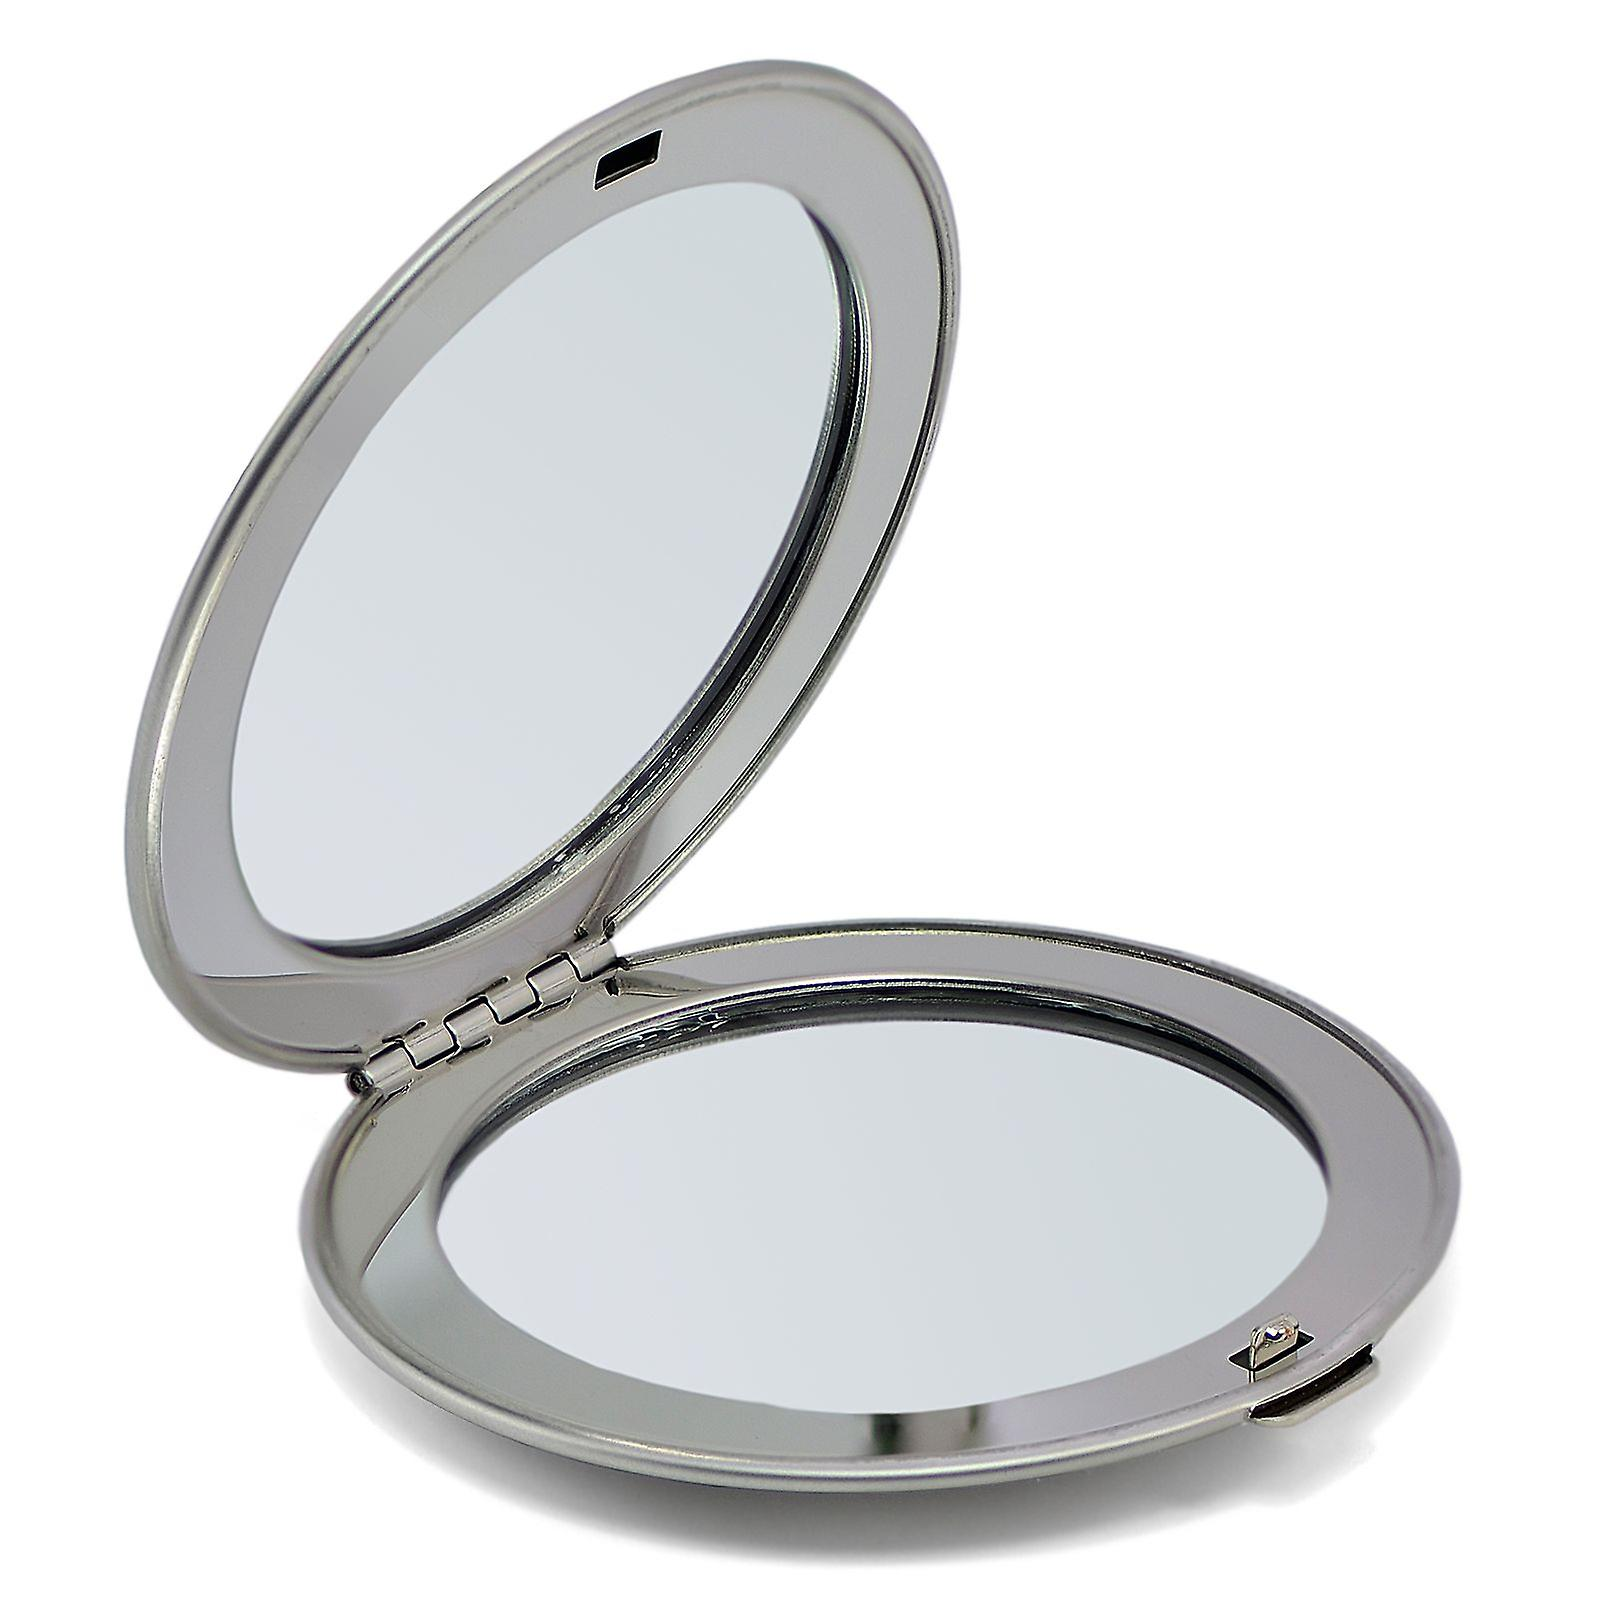 Design compact mirror ACS-11